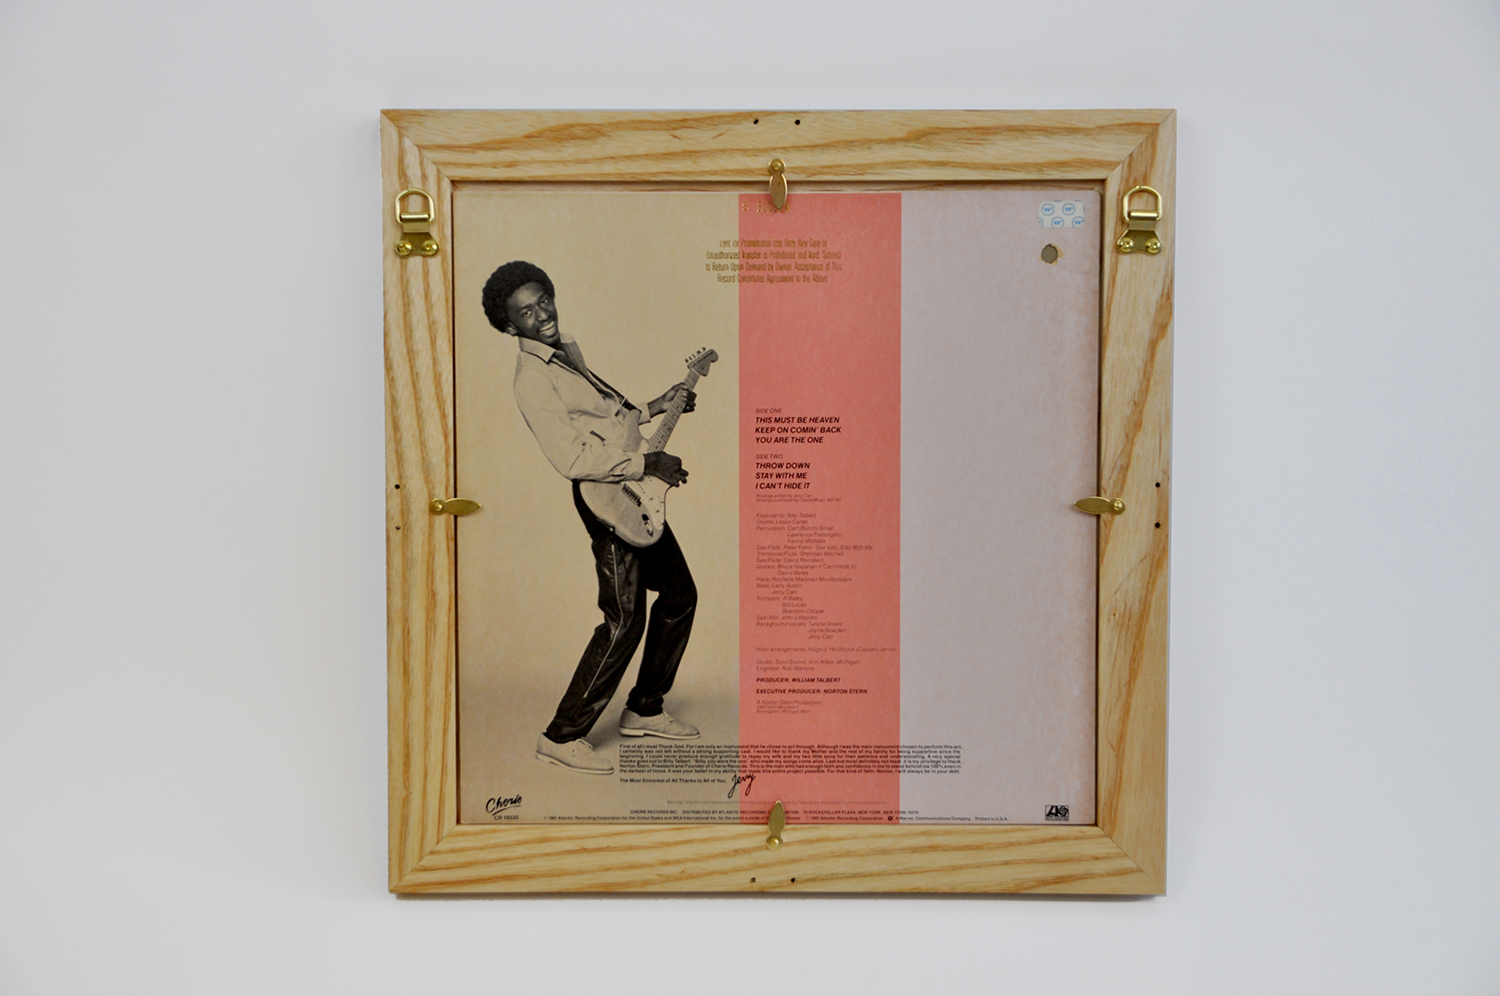 Lp Vinyl Display Frames Album Cover Frame Bertram Whitford